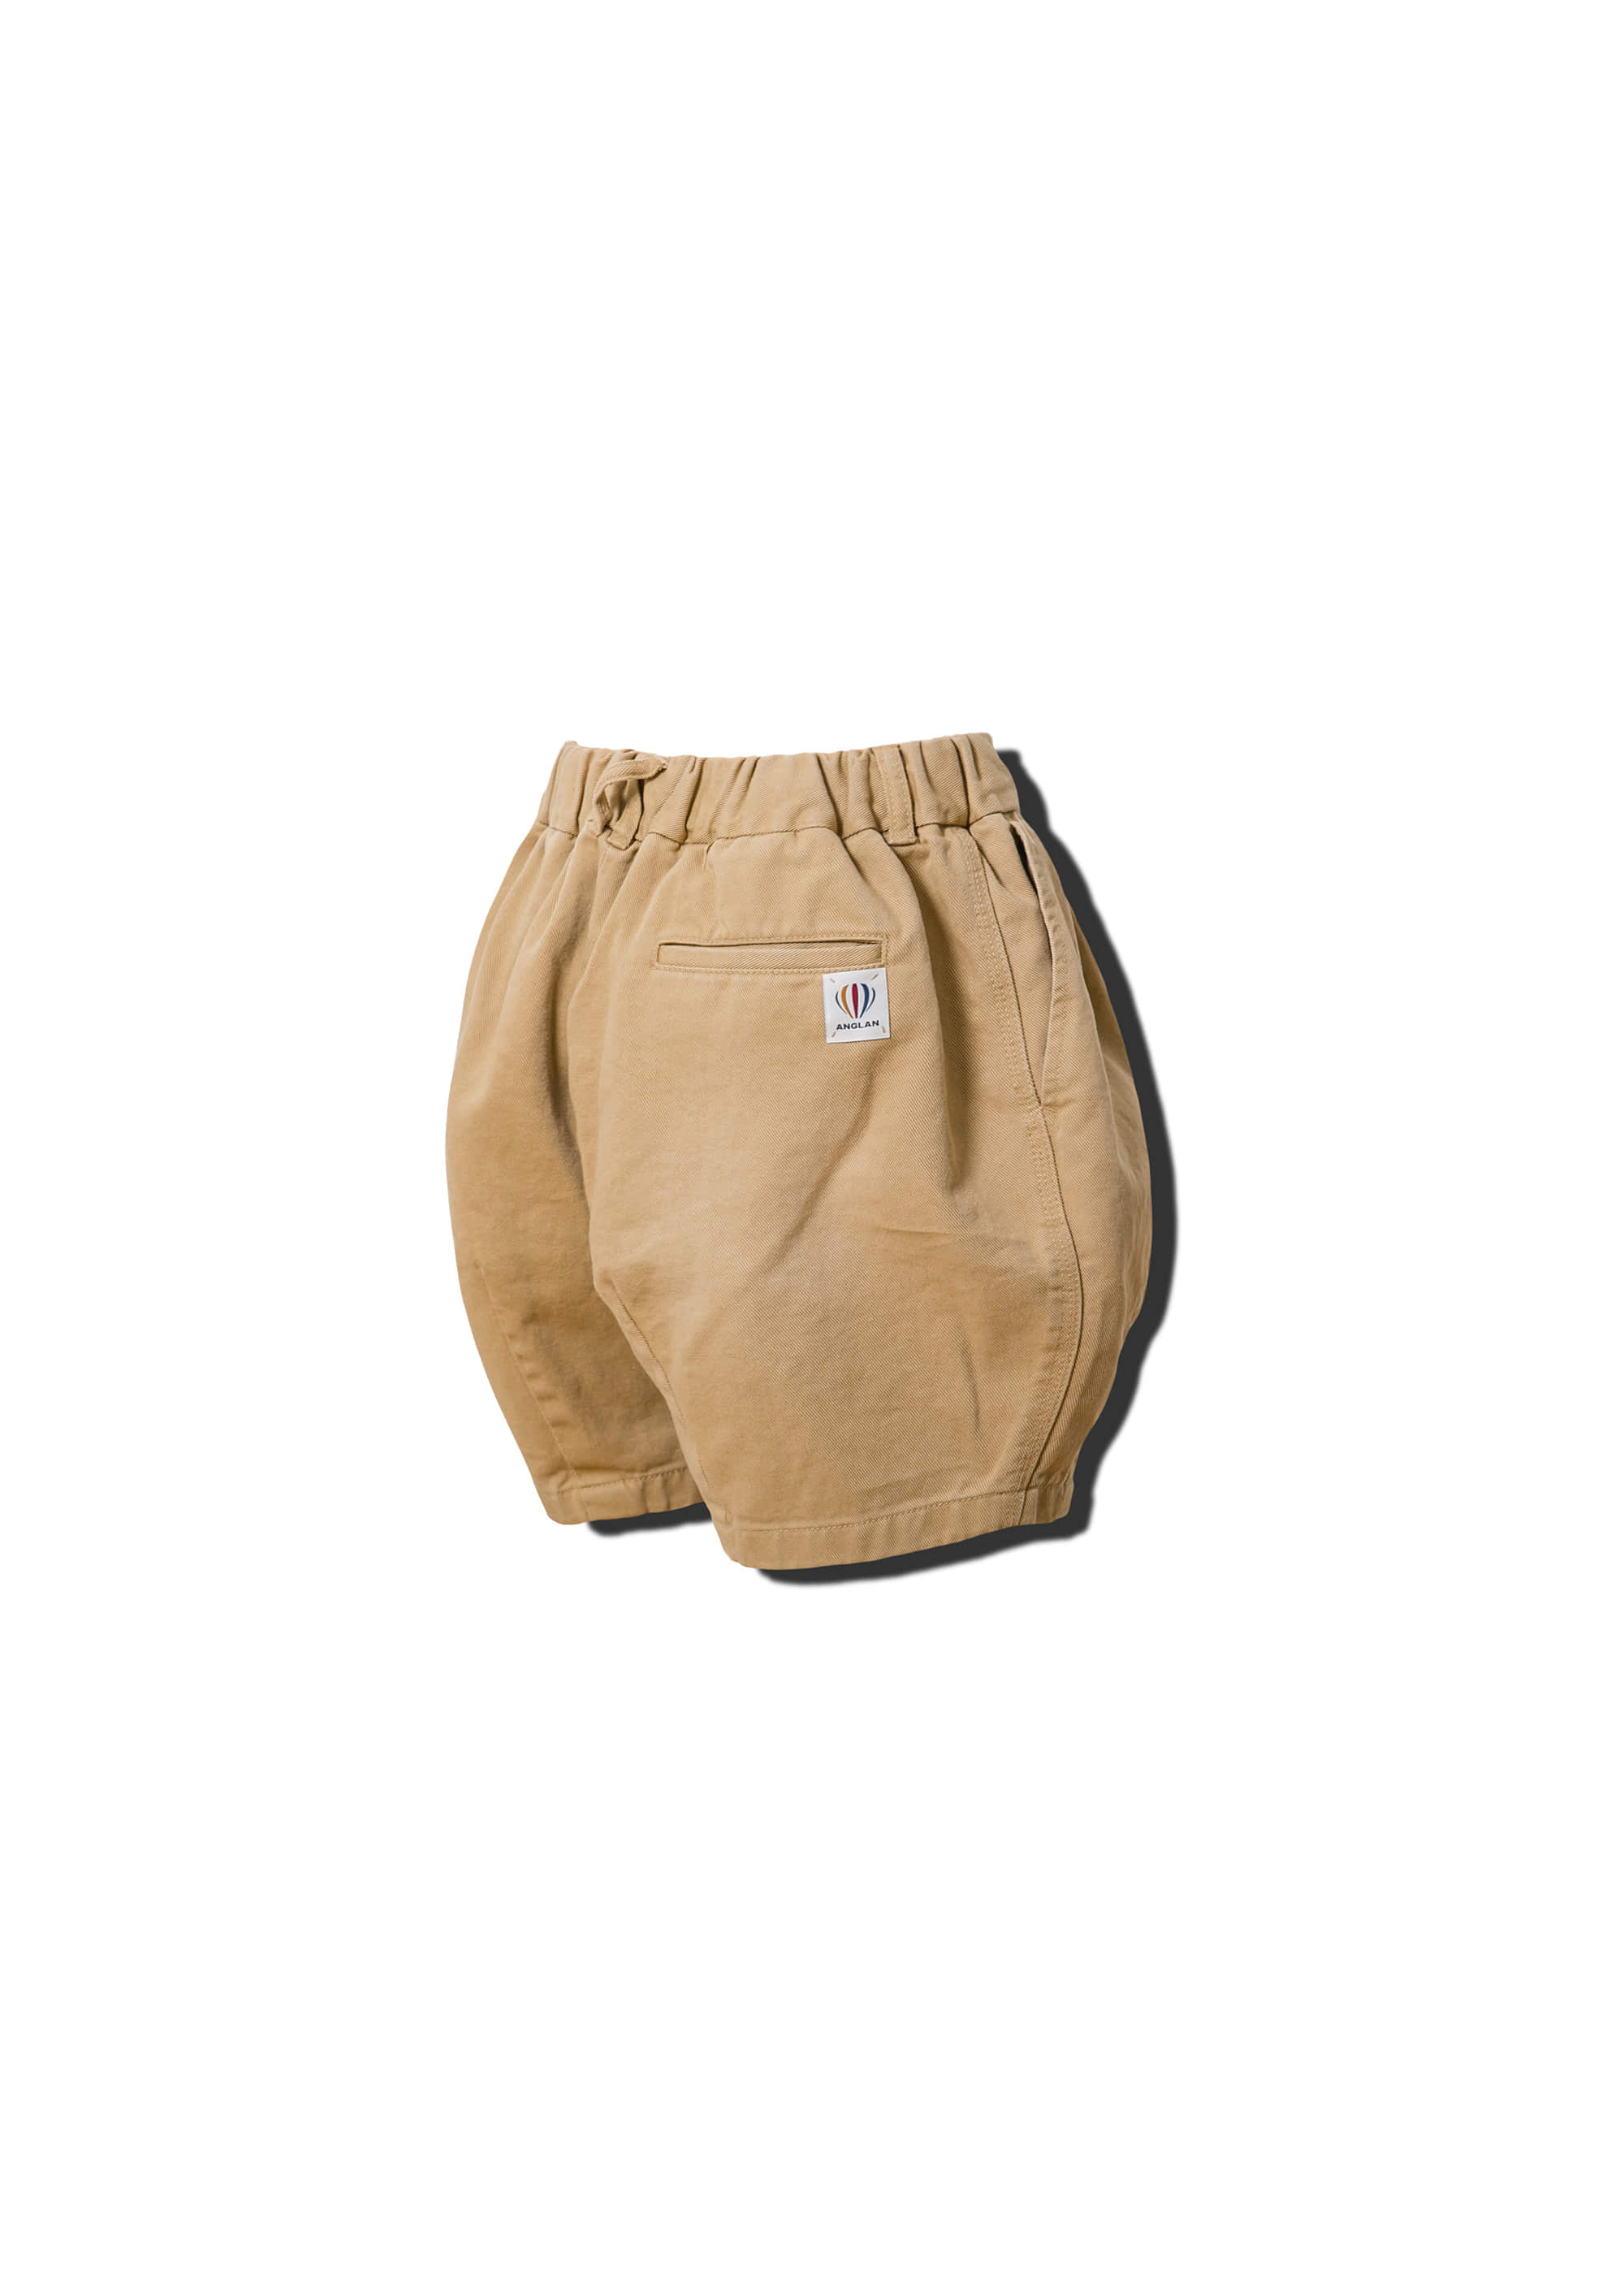 [AG] Cotton Easy Balloon Shorts - Beige